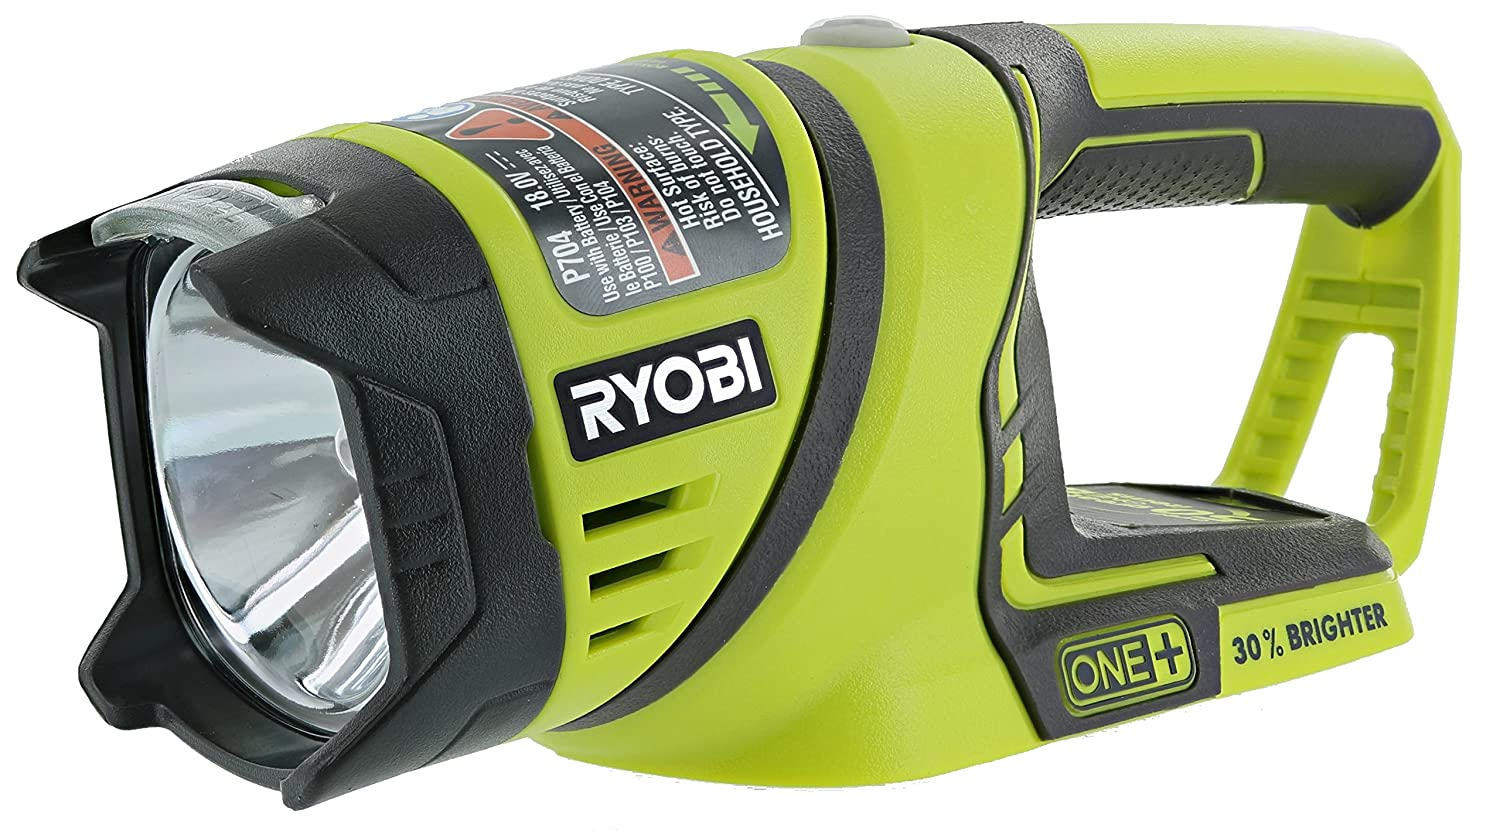 Ryobi One+ P704 18V Lithium Ion Cordless Flashlight w/ Rotating Head (Batteries Not Included, Power Tool Only)